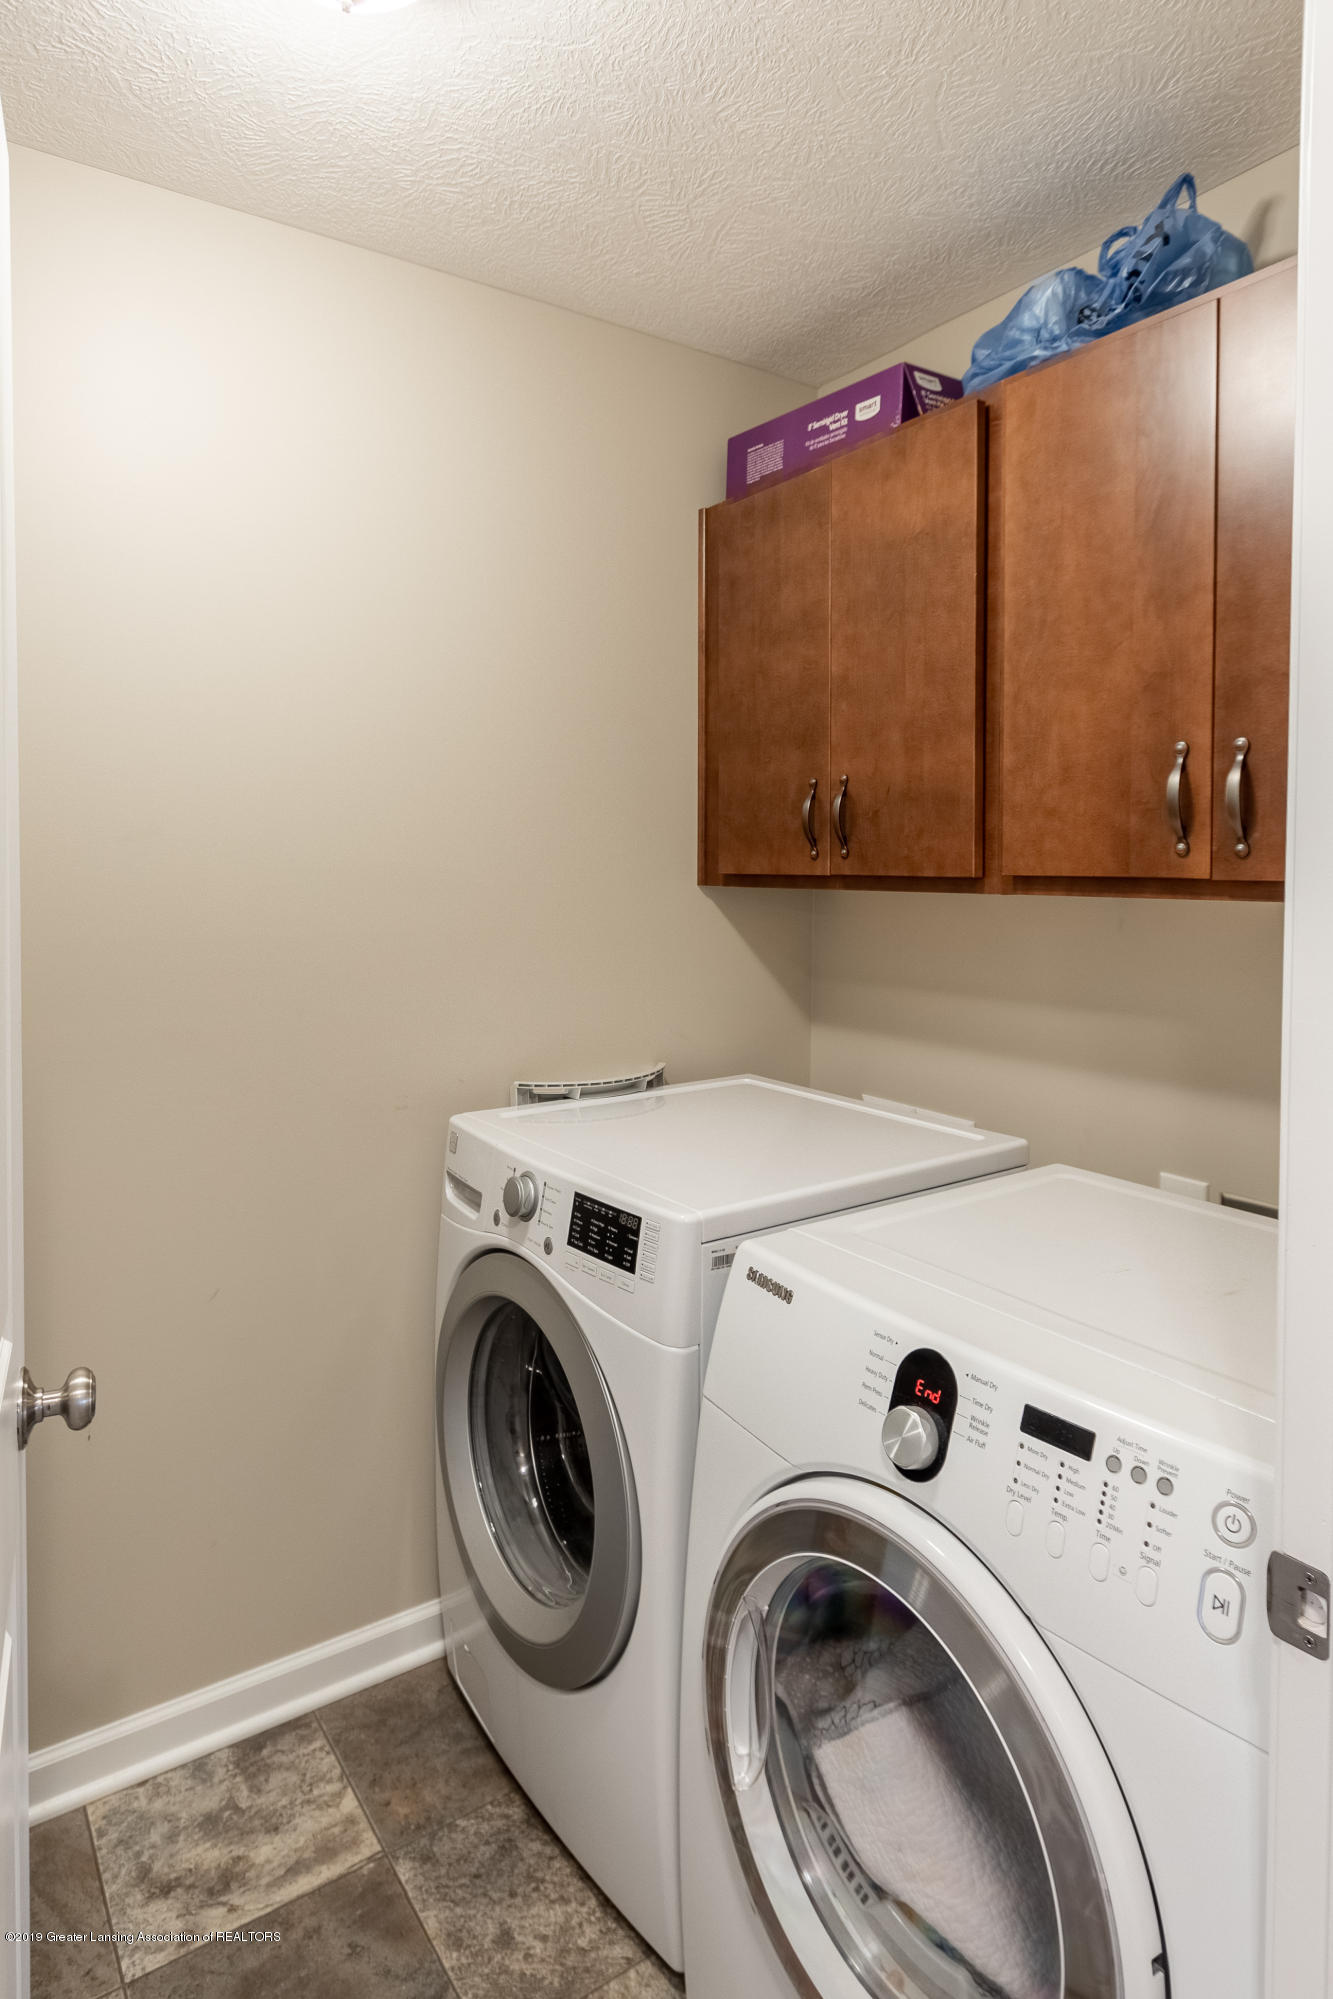 3758 Shearwater Ln - 2nd Floor Laundry Room - 43